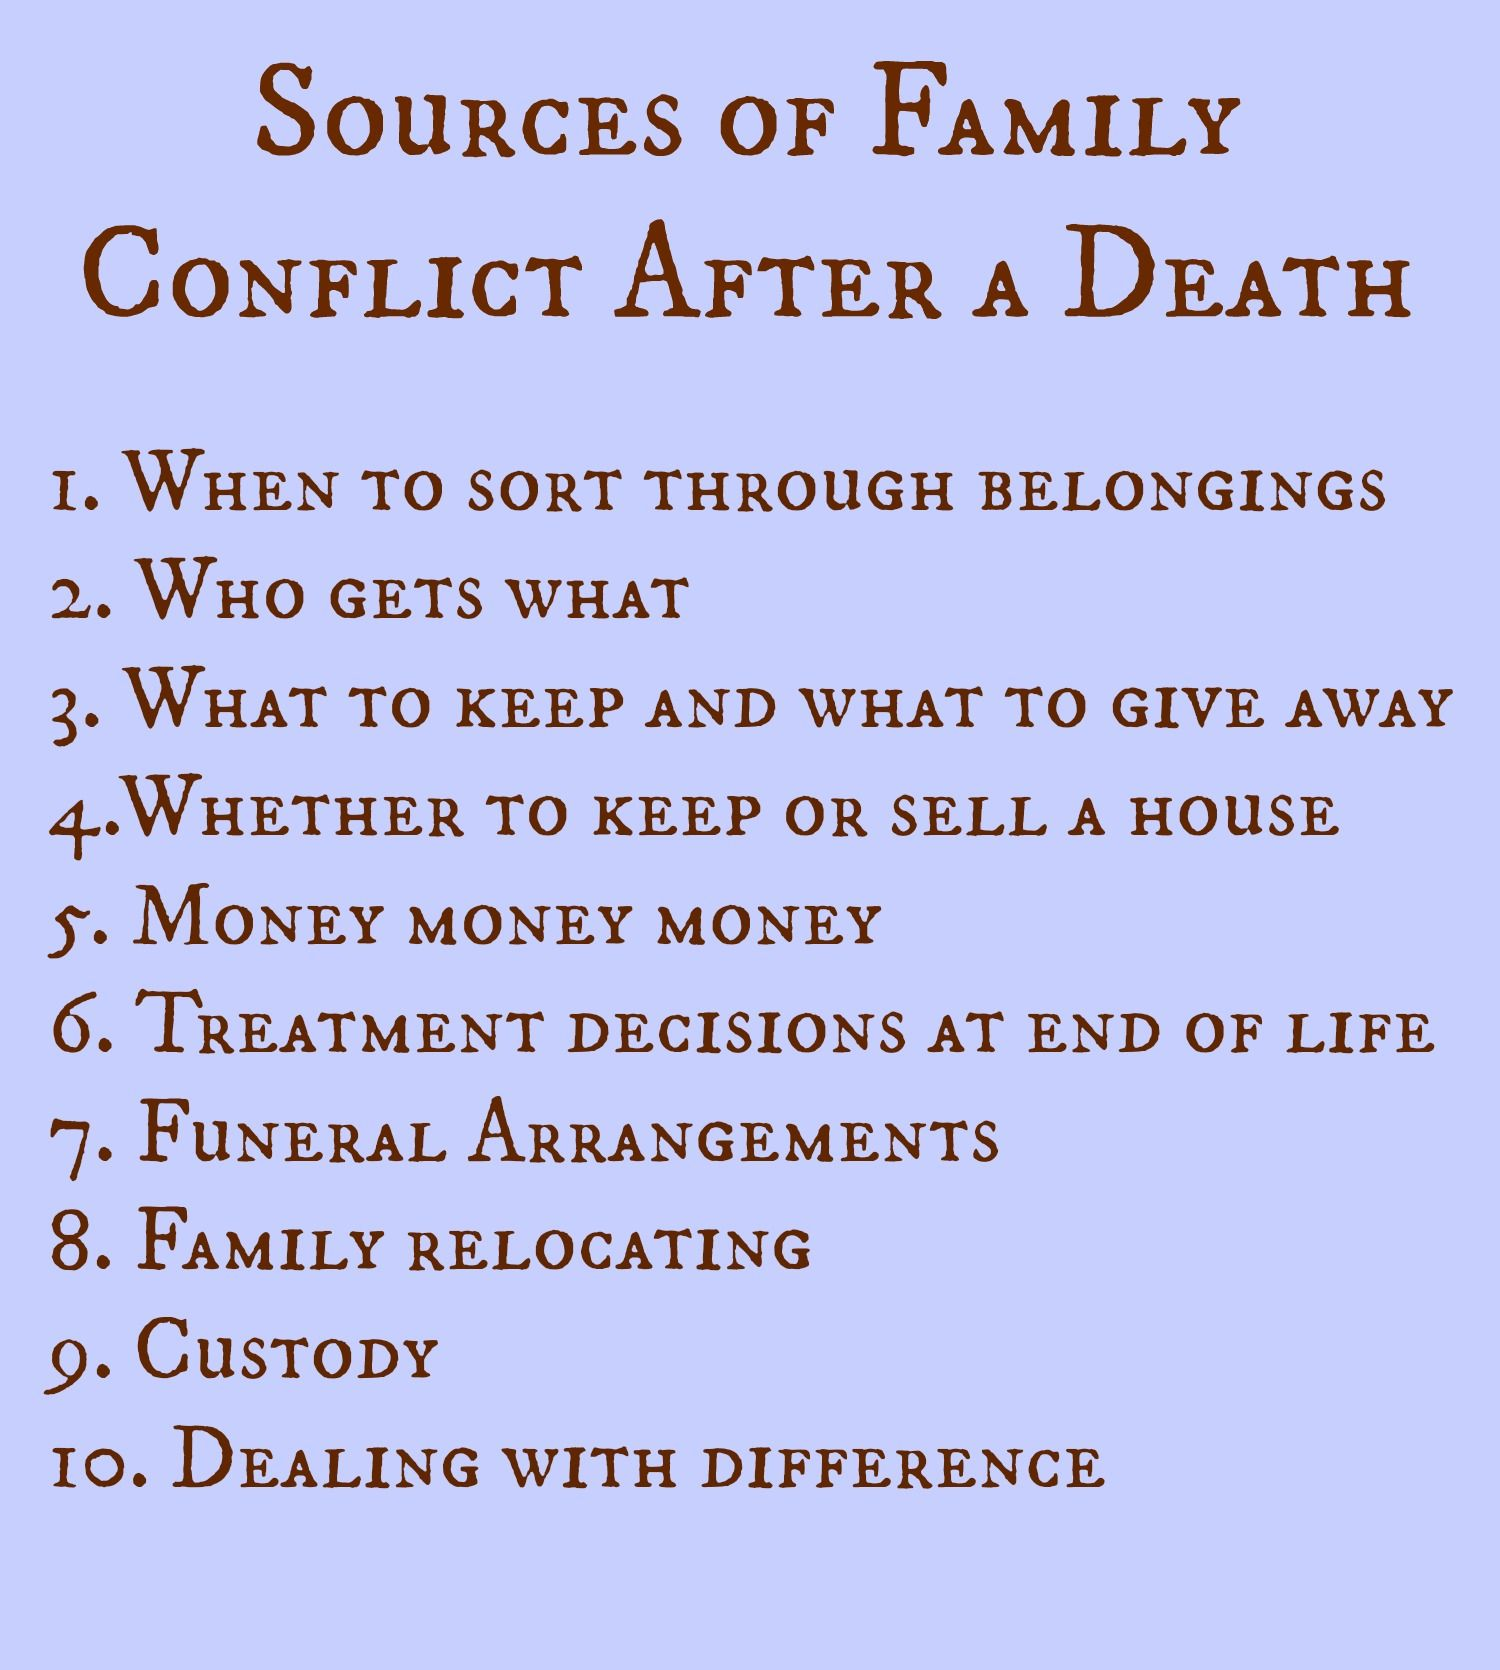 Prayer Quotes For Death In Family: When Death Brings Out The Worst: Family Fighting After A